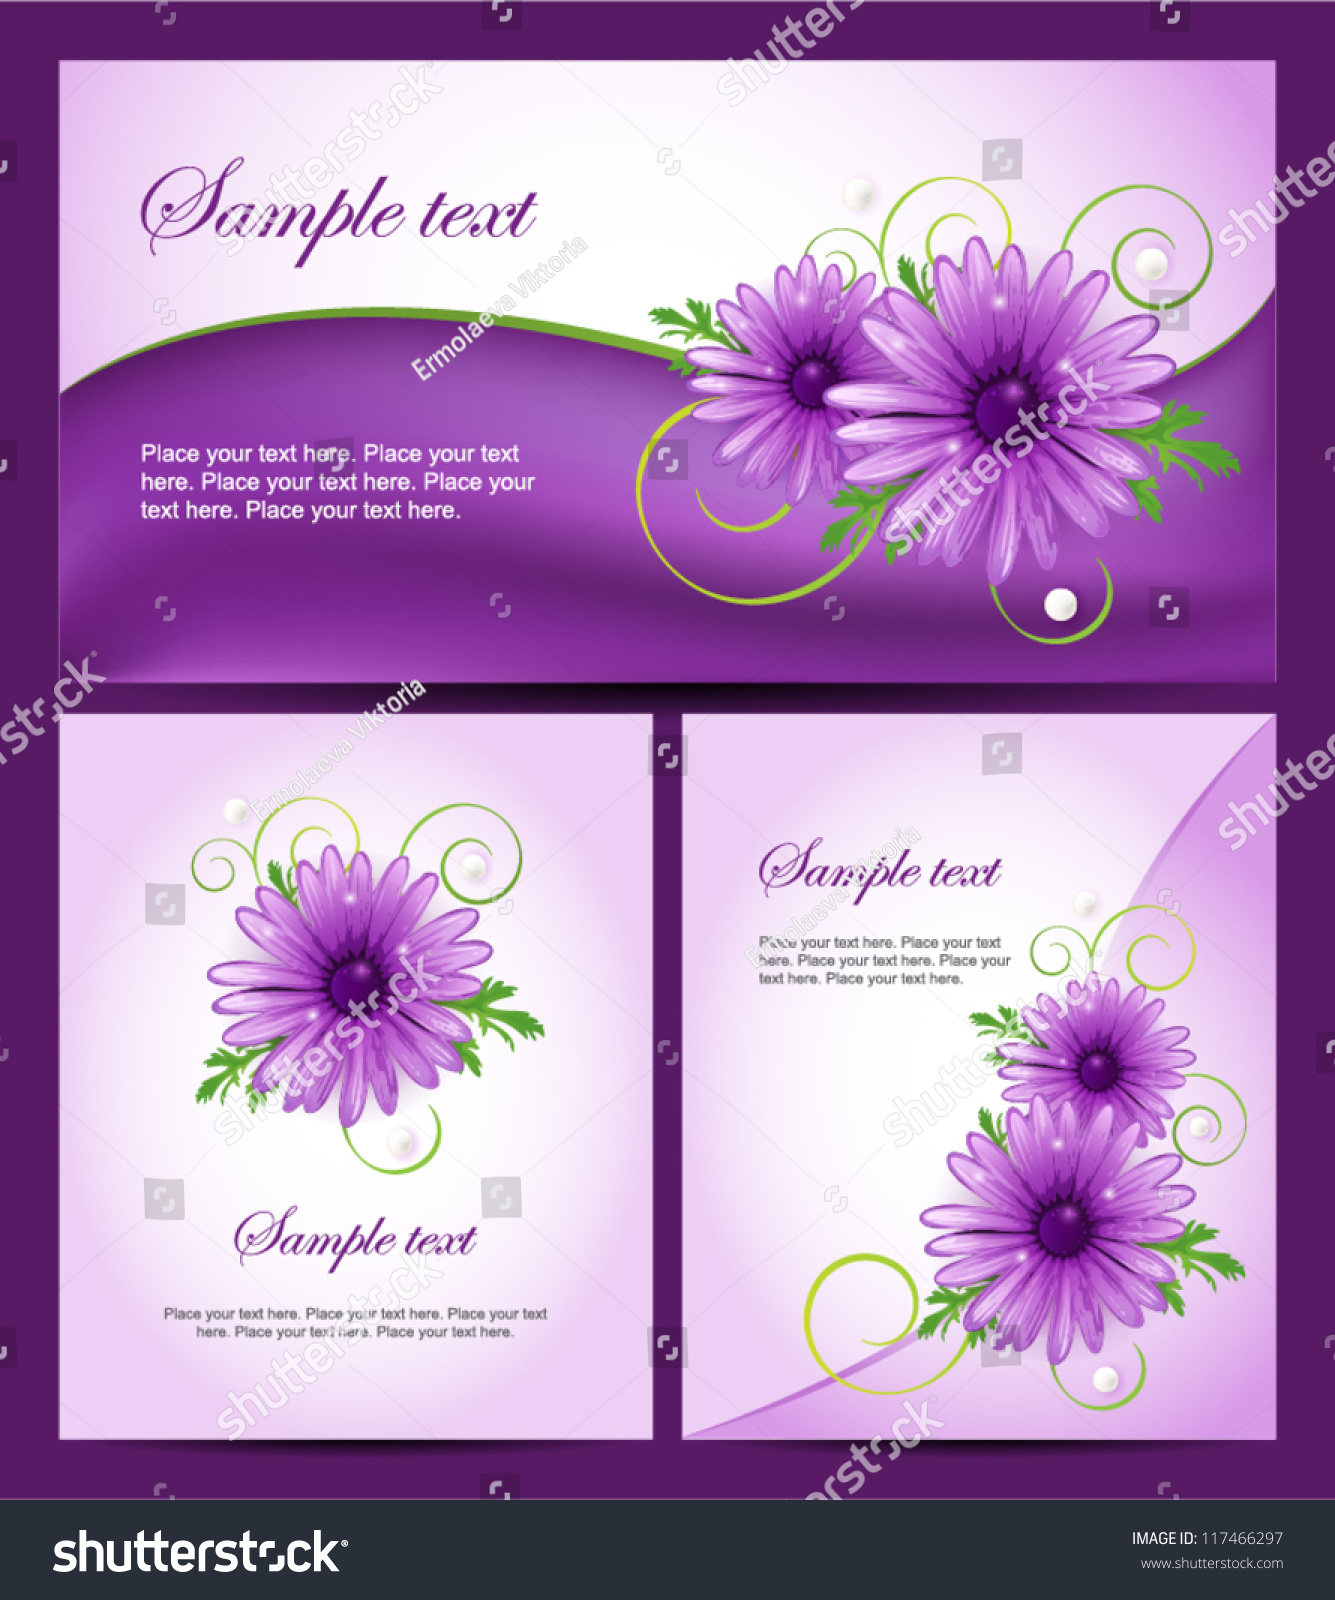 Set colorful banners purple daisy flowers stock vector royalty free set of colorful banners with purple daisy flowers easy to edit perfect for invitations izmirmasajfo